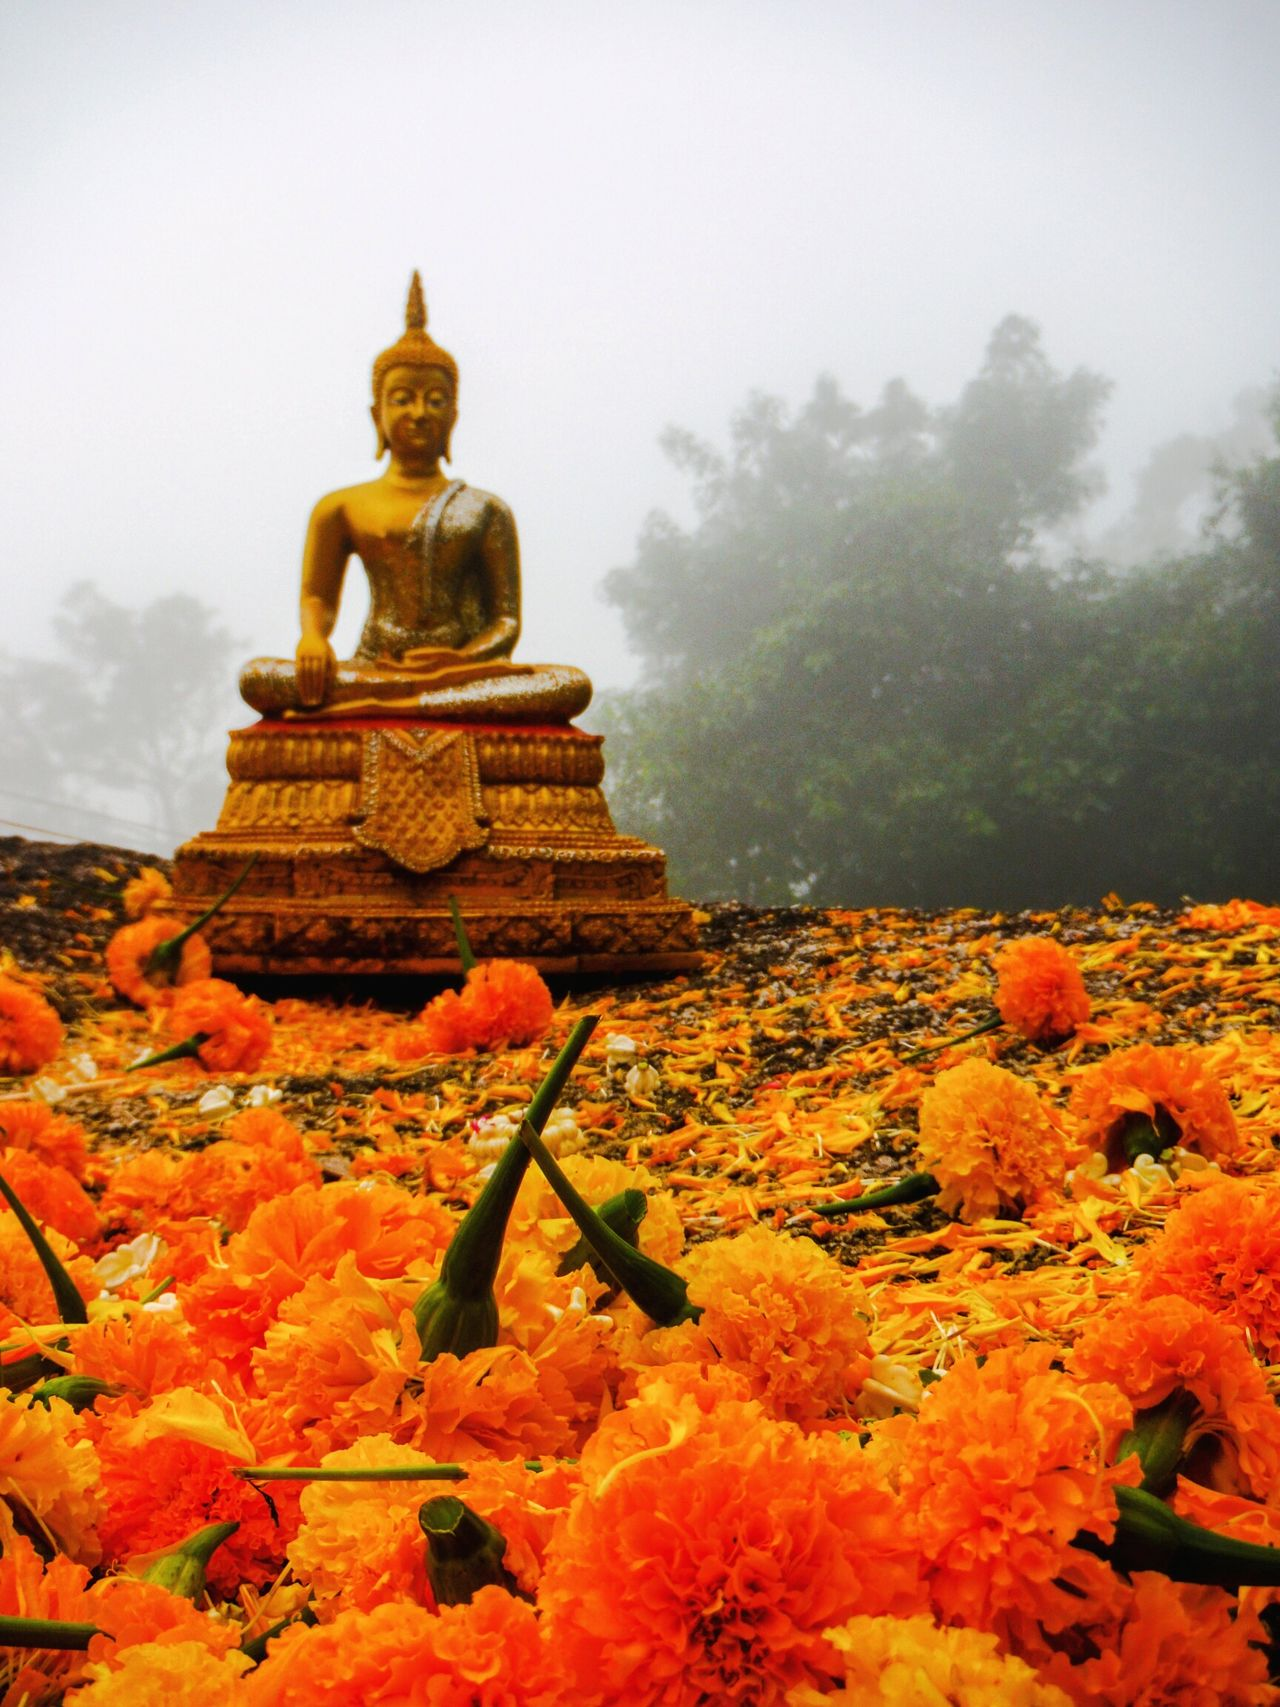 On the way up Khao Khitchakoot, beautiful marigold flower petals covered the ground and Buddhist Statues were everywhere. Thailand EyeEm Thailand Foggy Foggy Morning Remote Place Long Journey Khao Khitchakut Khao Khitcha Koot Khaokitchakoot Buddhist Pilgrimage Marigold Flower Sacred Place Temple In The Mountains Buddhist Tradition Buddha Buddha Statue Buddhastatue Orange Flowers Flower Petals Orange Flower Orange Petals Marigolds Marigoldflower